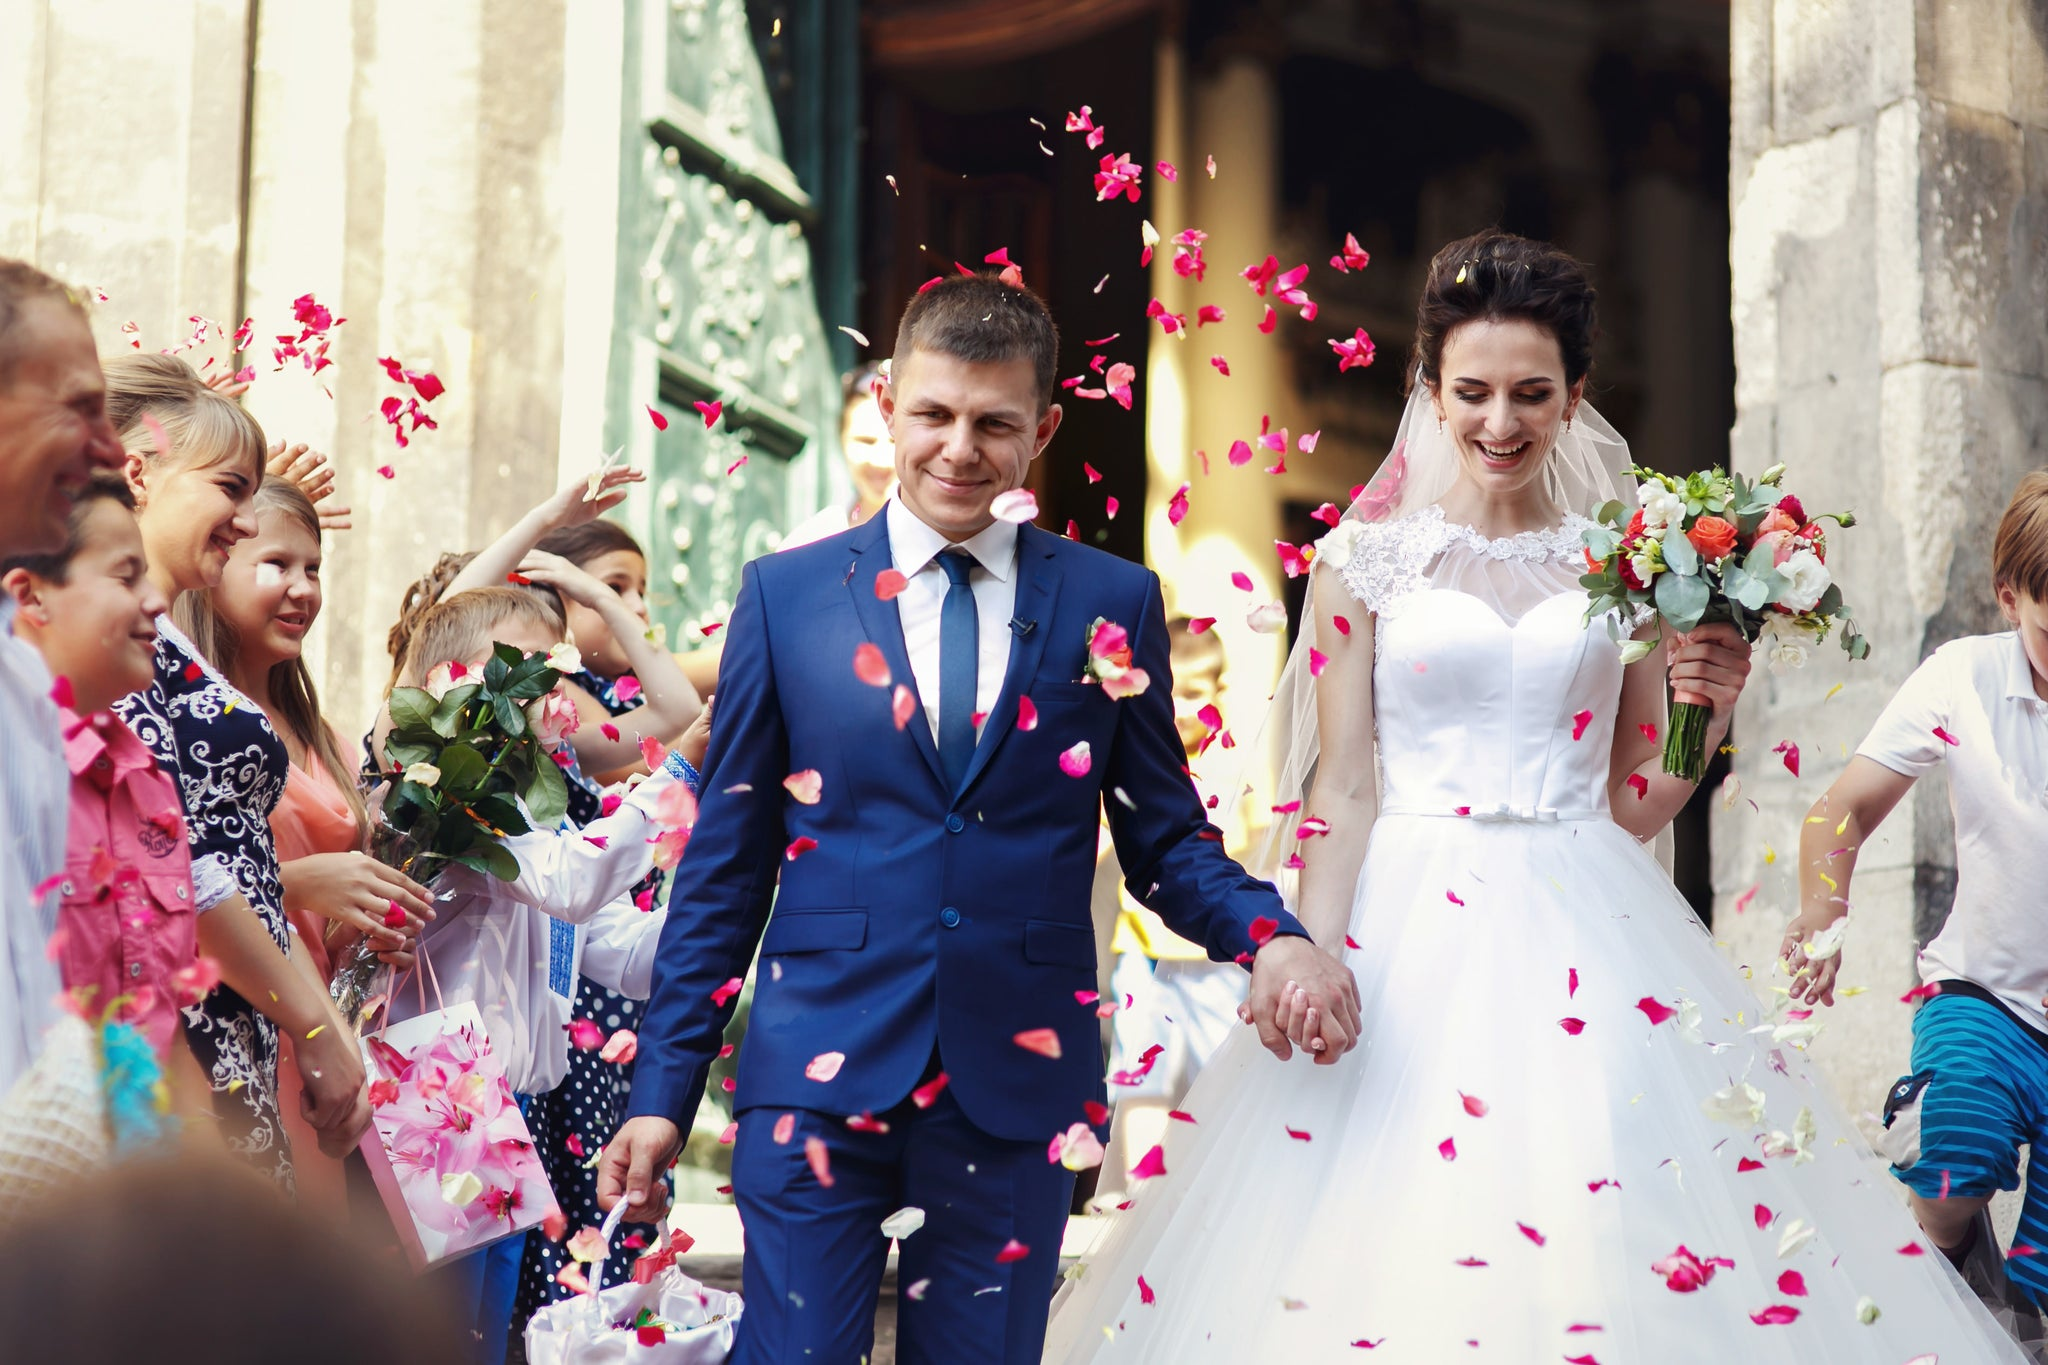 Looking For Ideas For Your Wedding Day Confetti Toss?